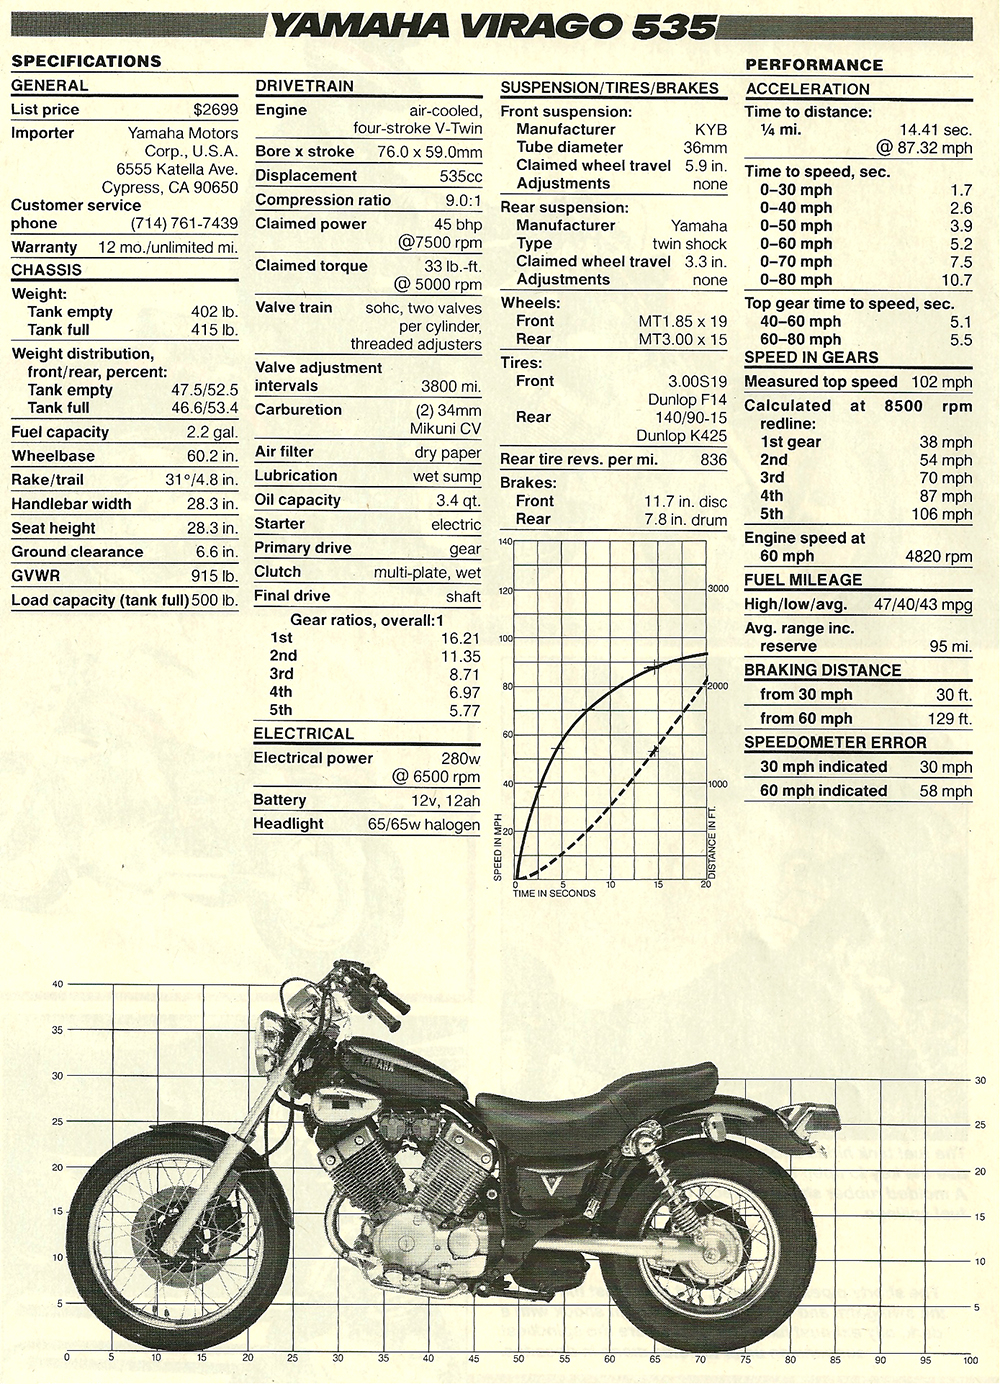 1987 Yamaha Virago 535 road test 05.jpg